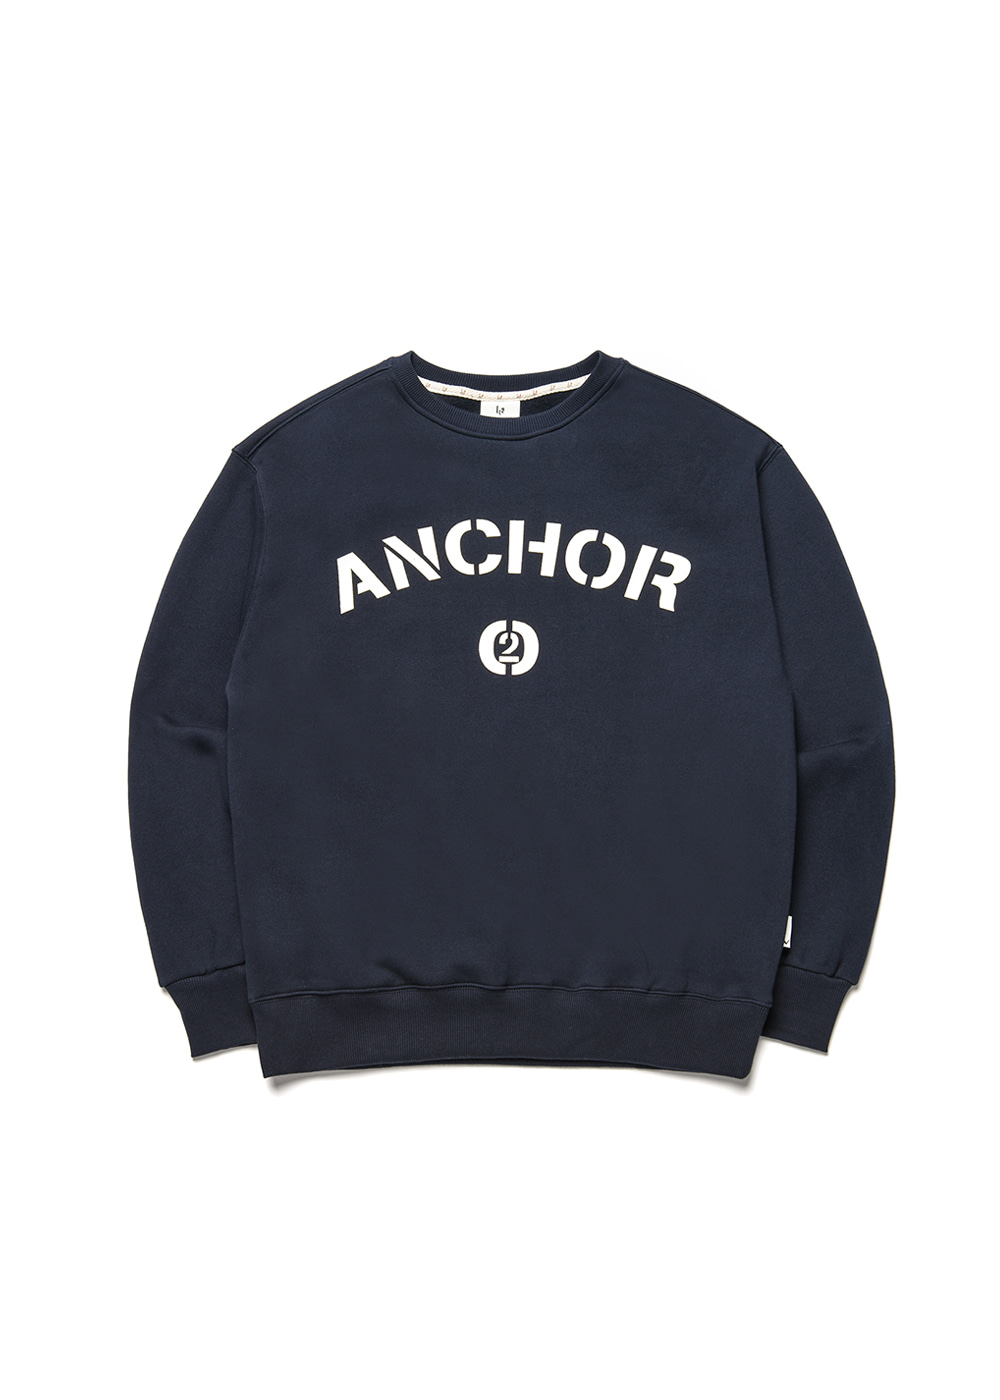 Anchor sweat shirt [navy]